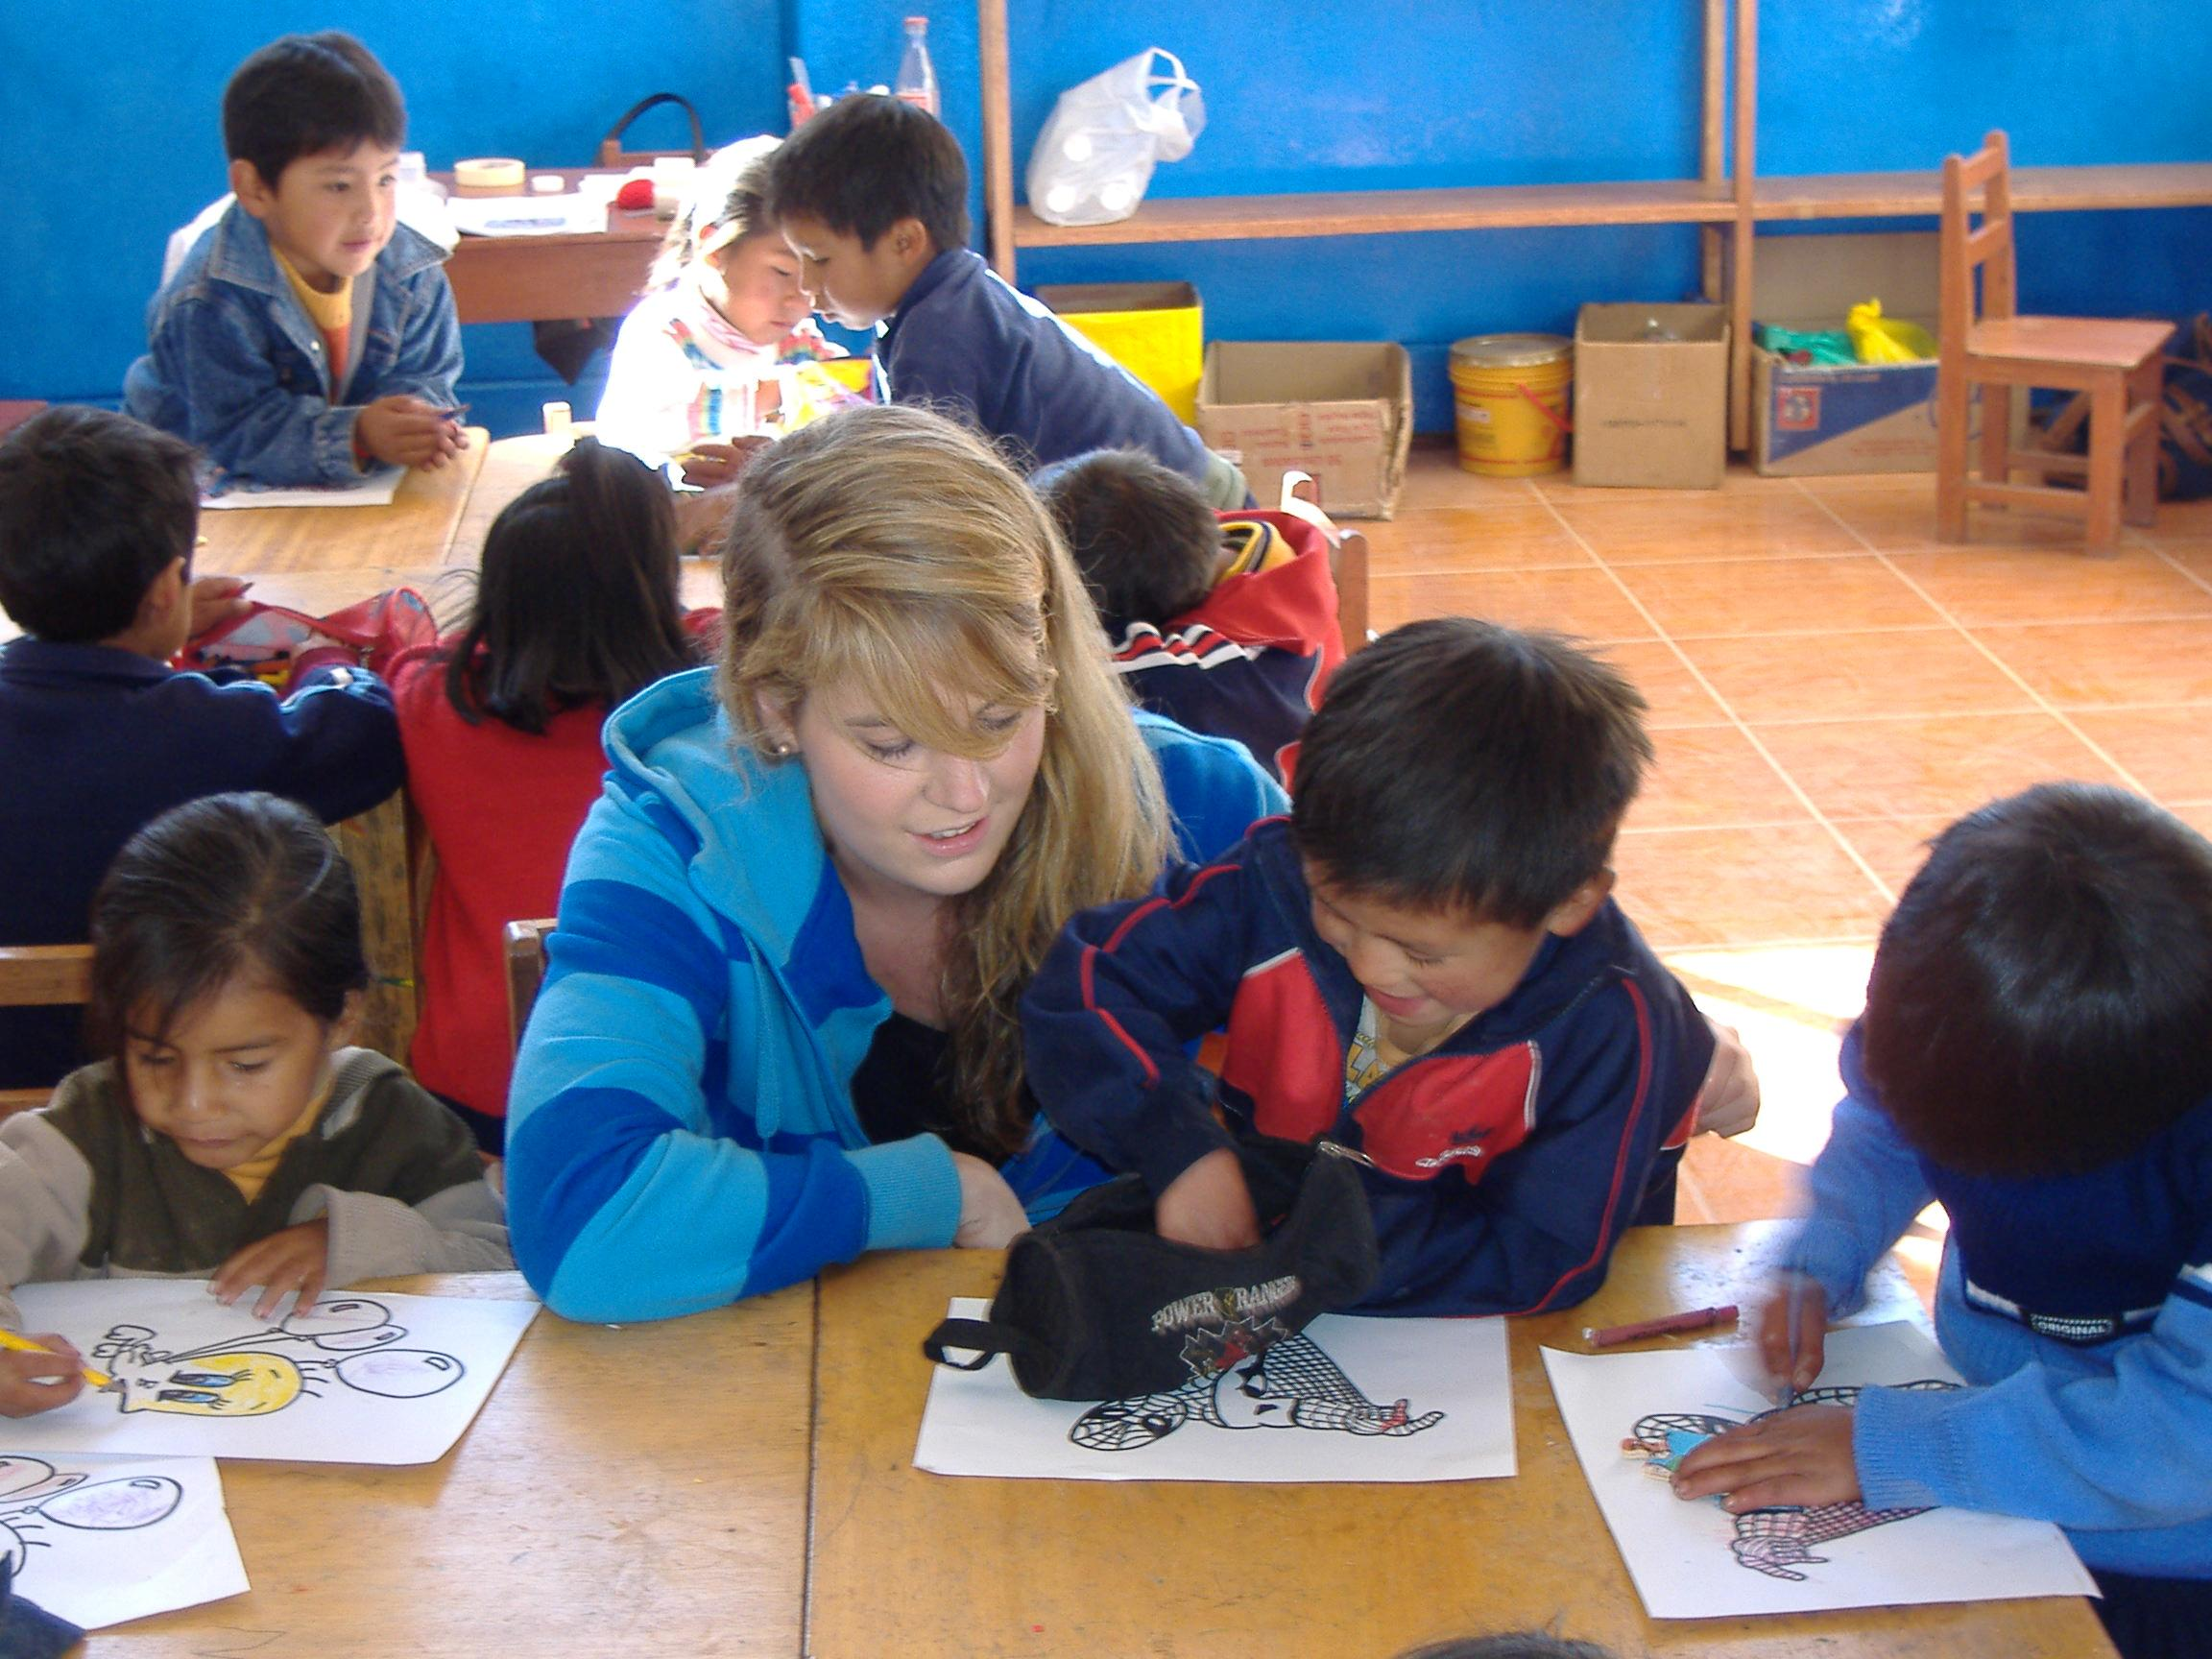 Projects Abroad Childcare volunteer helps children in Peru draw within a care centre placement.